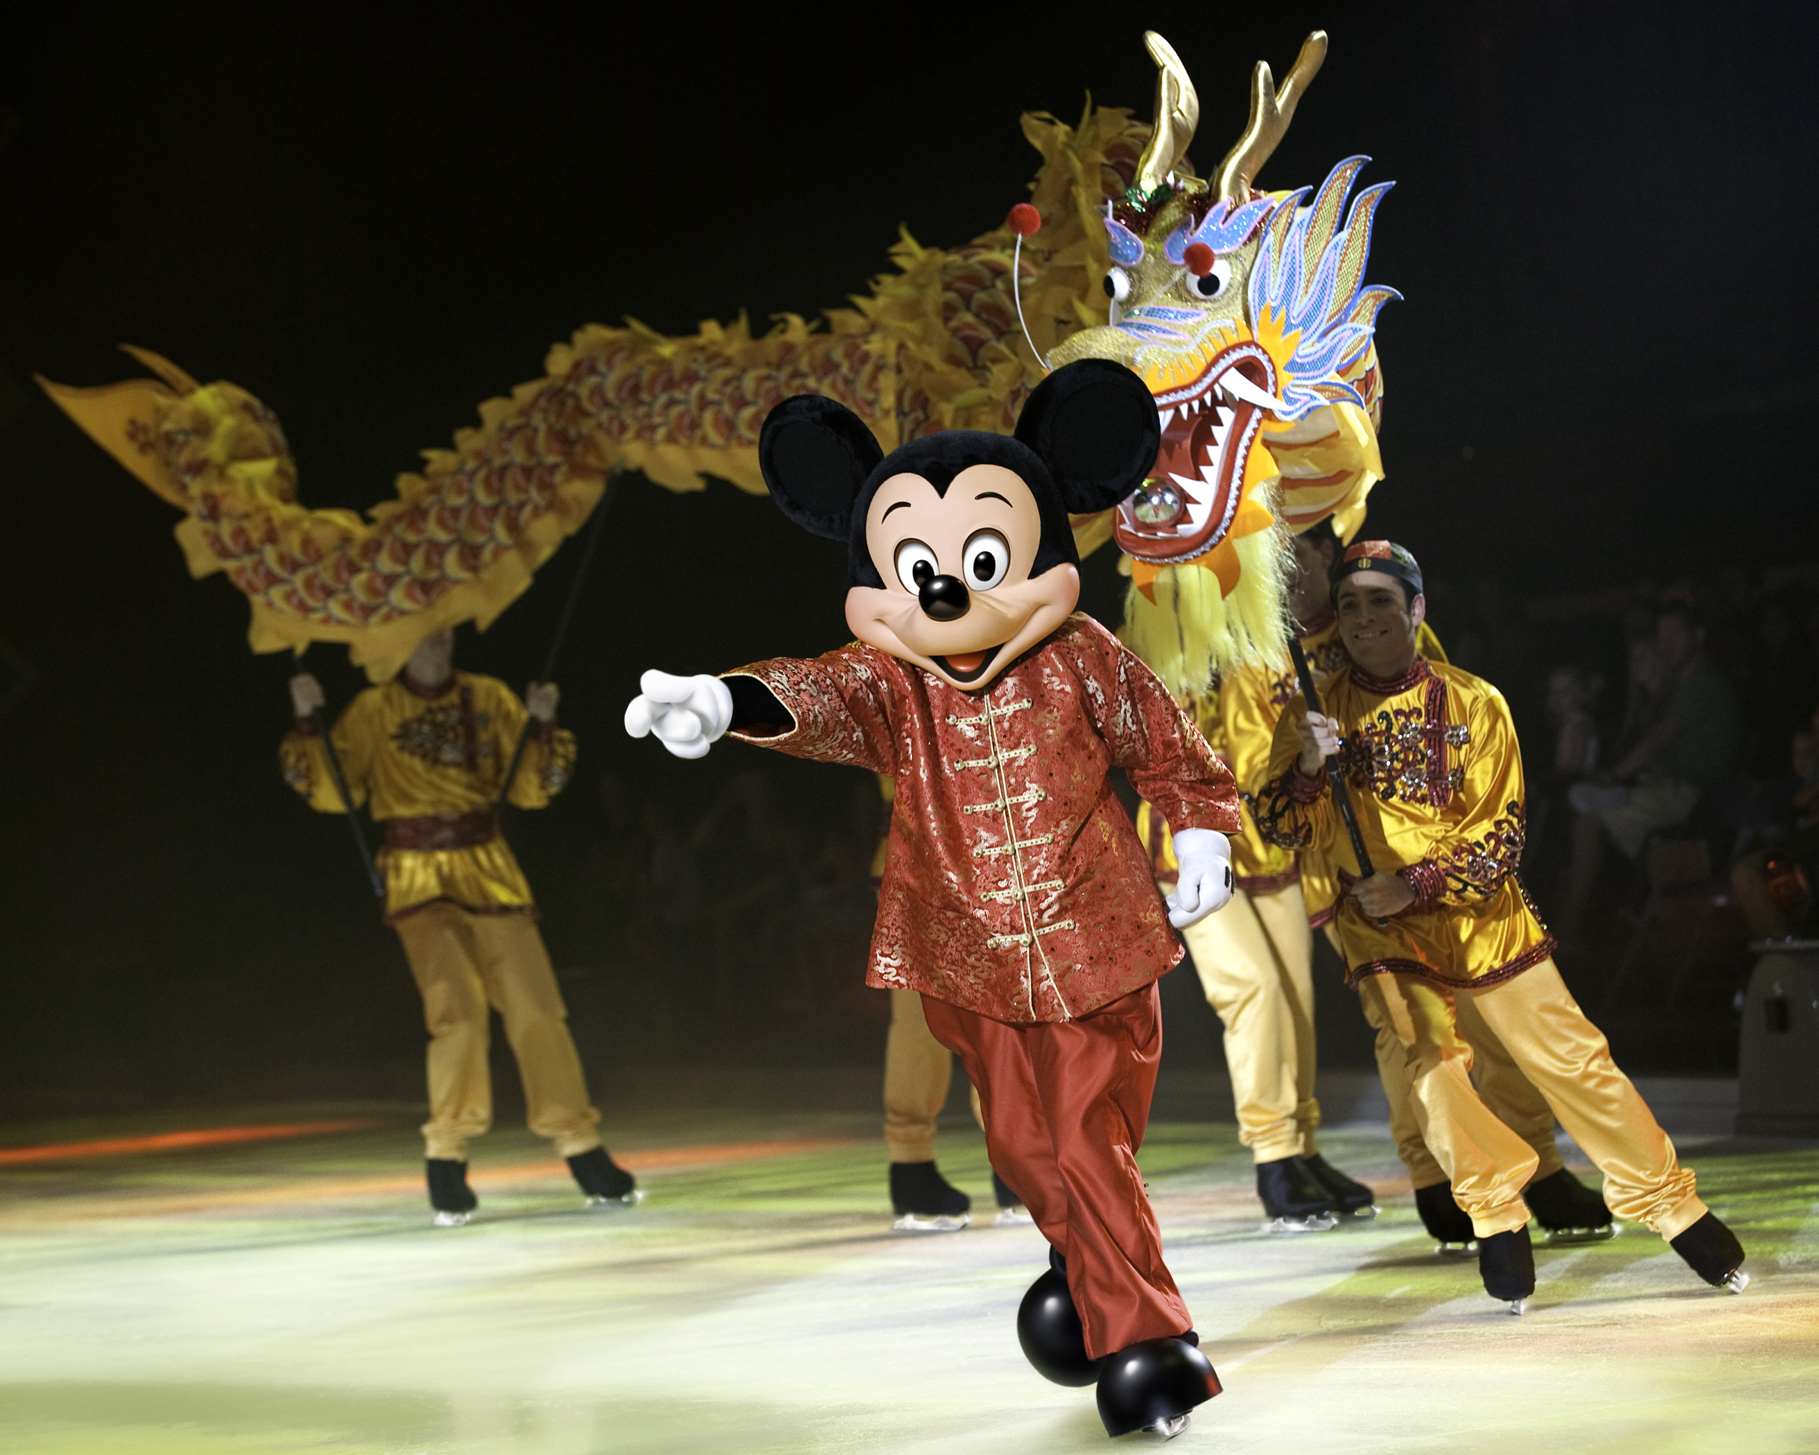 Photo credit: Mickey Mouse celebrating the Chinese New Year in Disney on Ice Let's Celebrate. Photo credit: ©Disney, ©Feld Entertainment